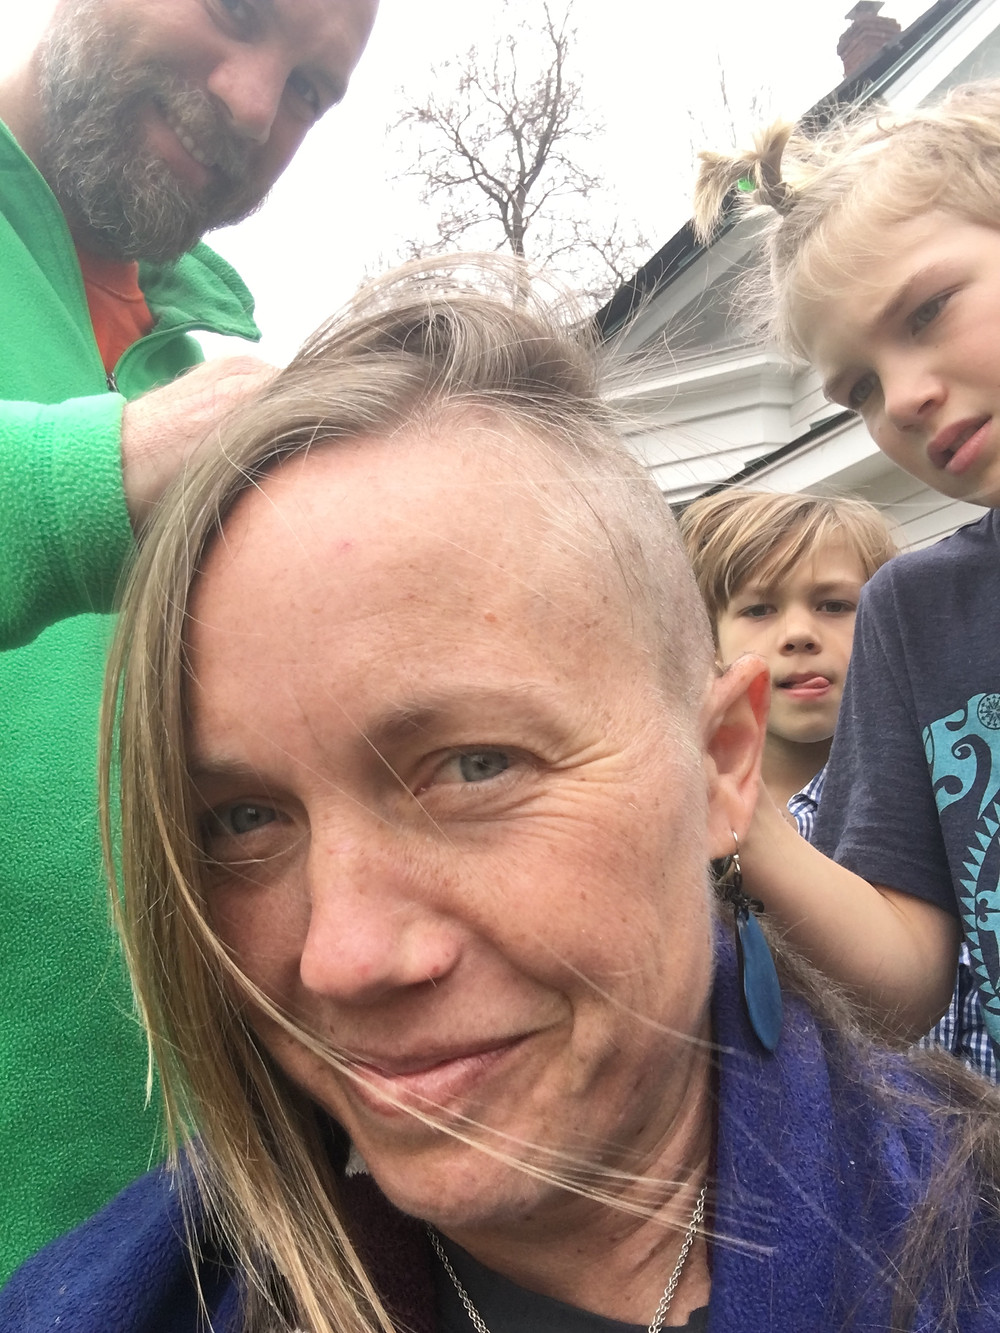 Husband and two sons are shaving the author's hair with an electric razor.